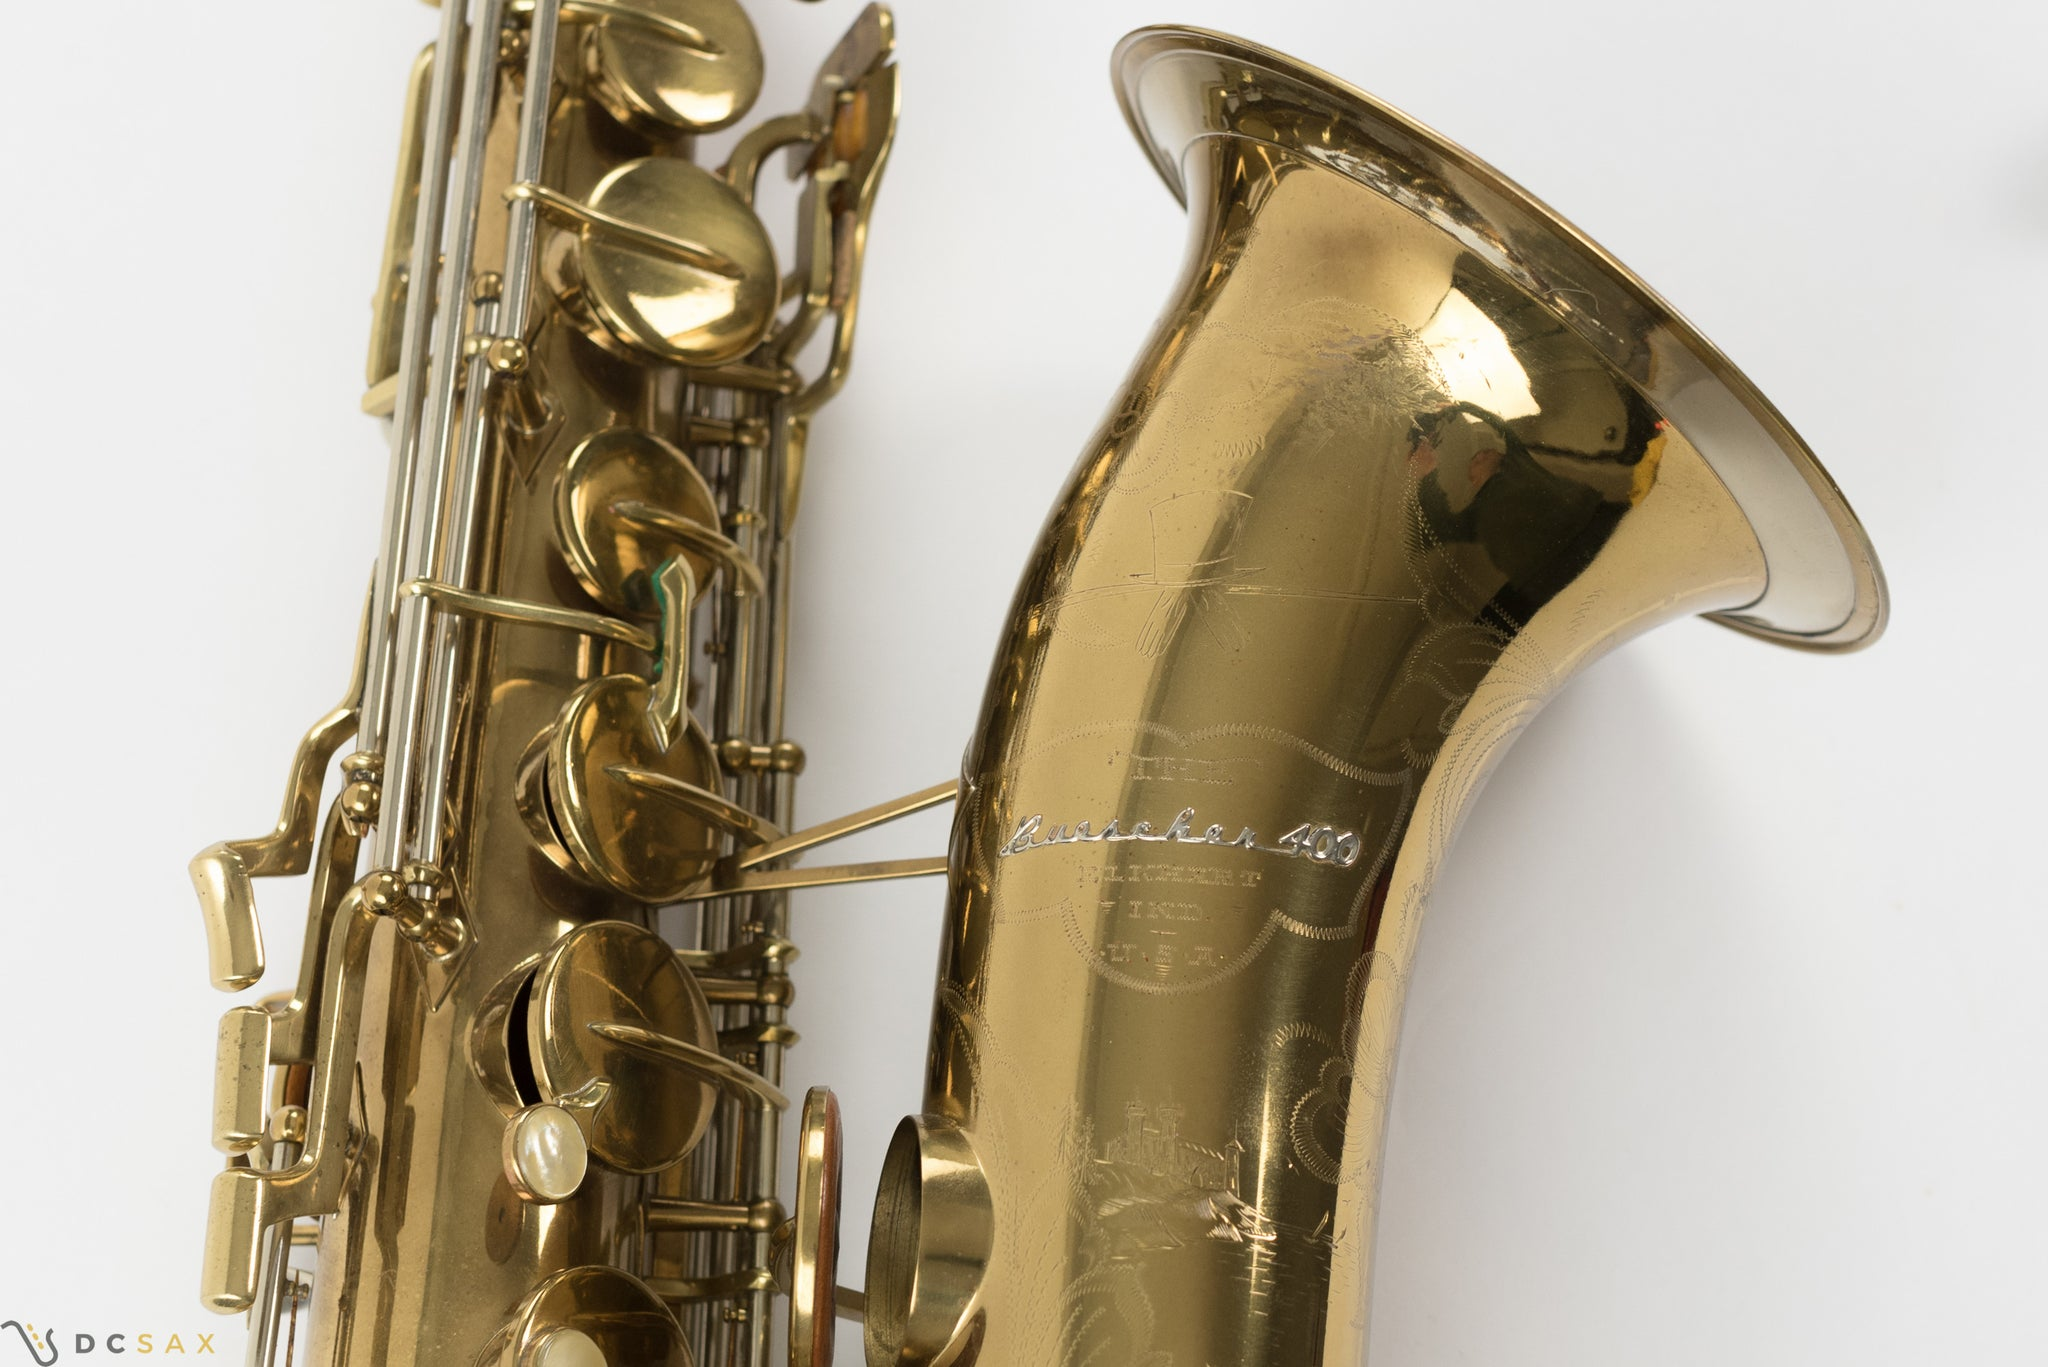 Buescher 400 Top Hat and Cane Tenor Saxophone, Near Mint, Original Lacquer